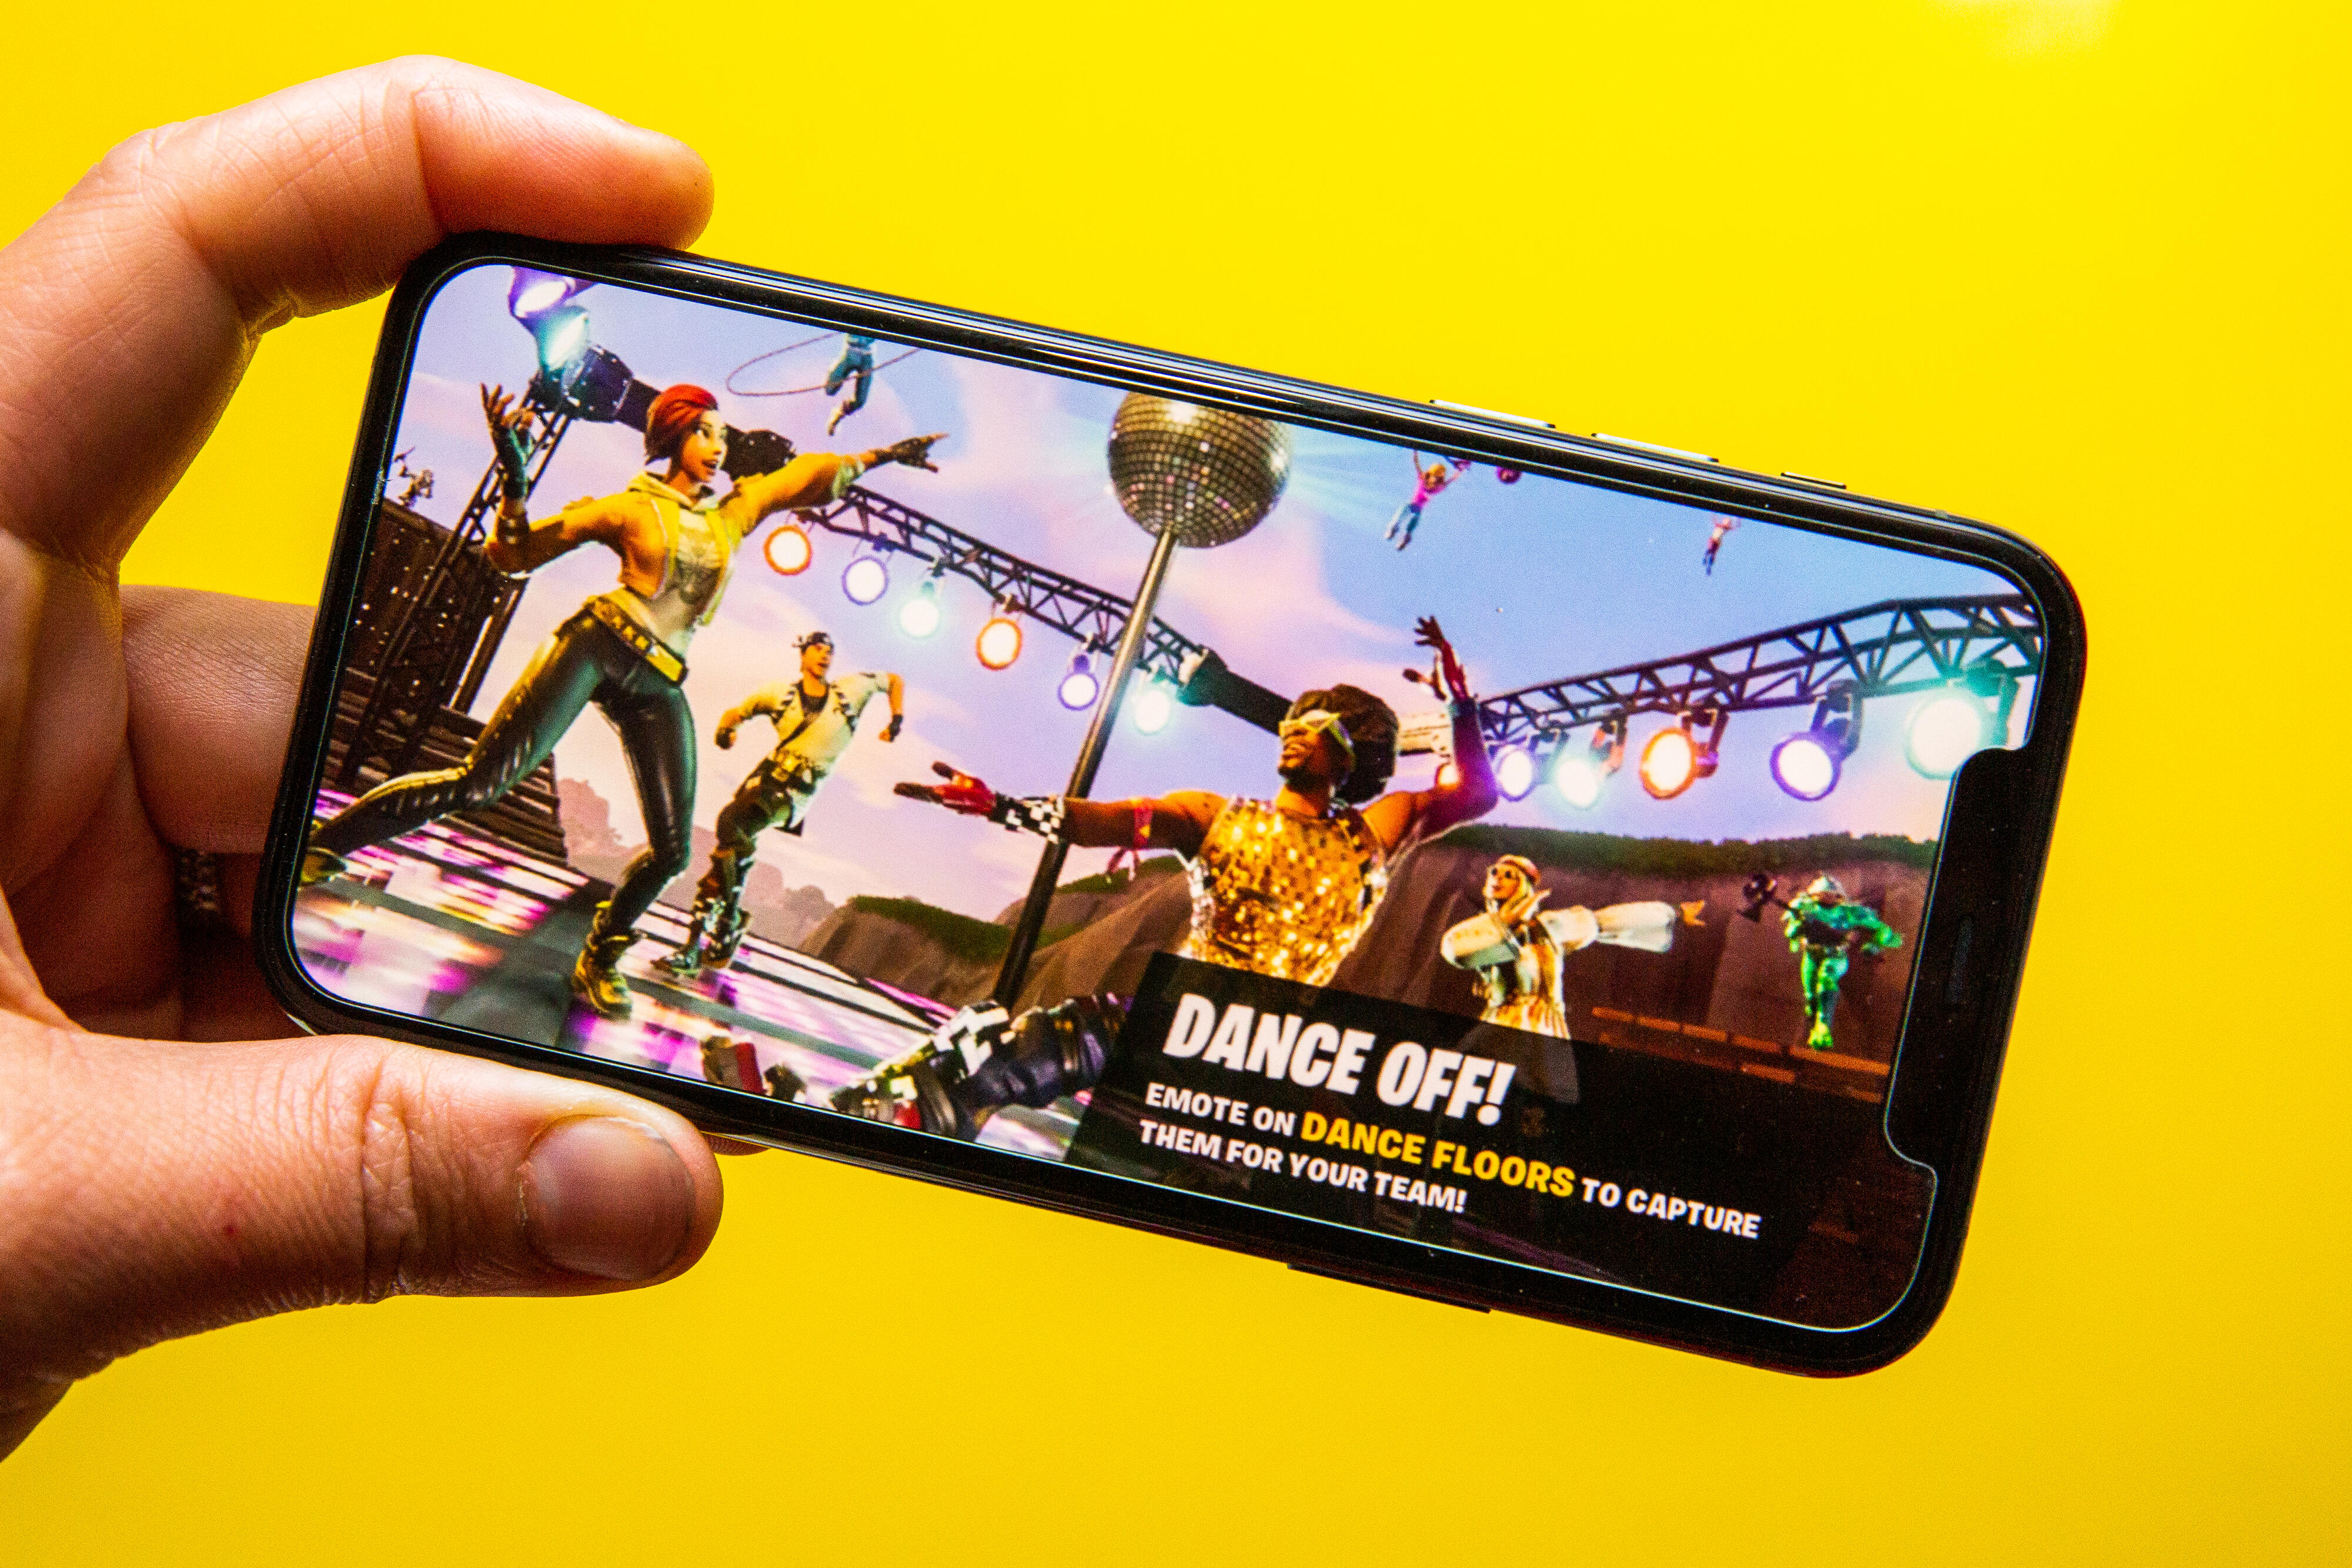 Will Fortnite come back to the iPhone